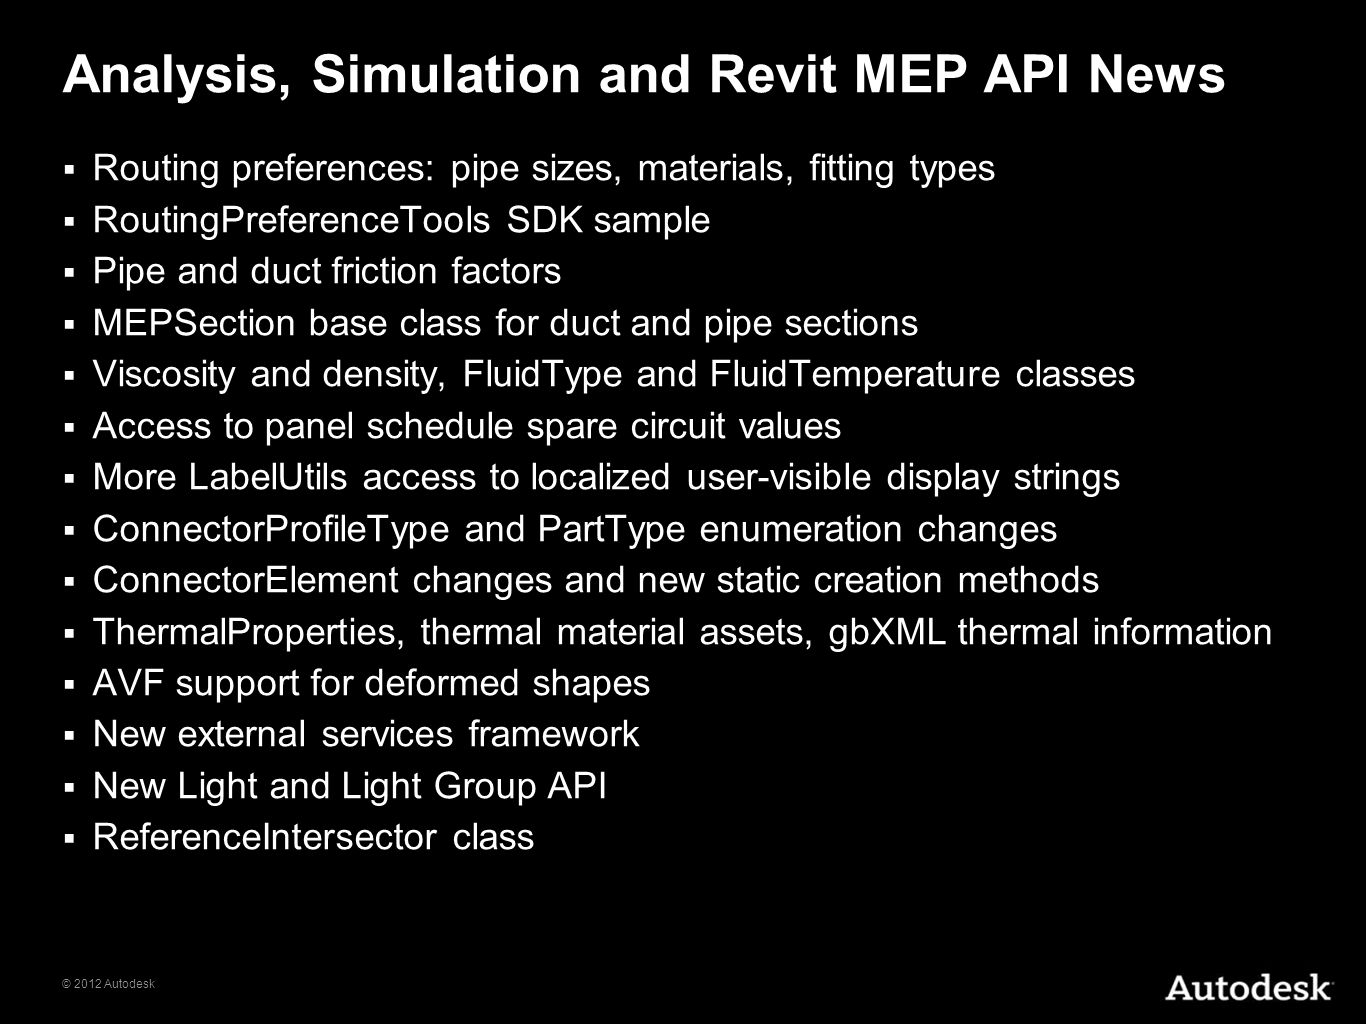 © 2012 Autodesk Analysis, Simulation and Revit MEP API News Routing preferences: pipe sizes, materials, fitting types RoutingPreferenceTools SDK sampl